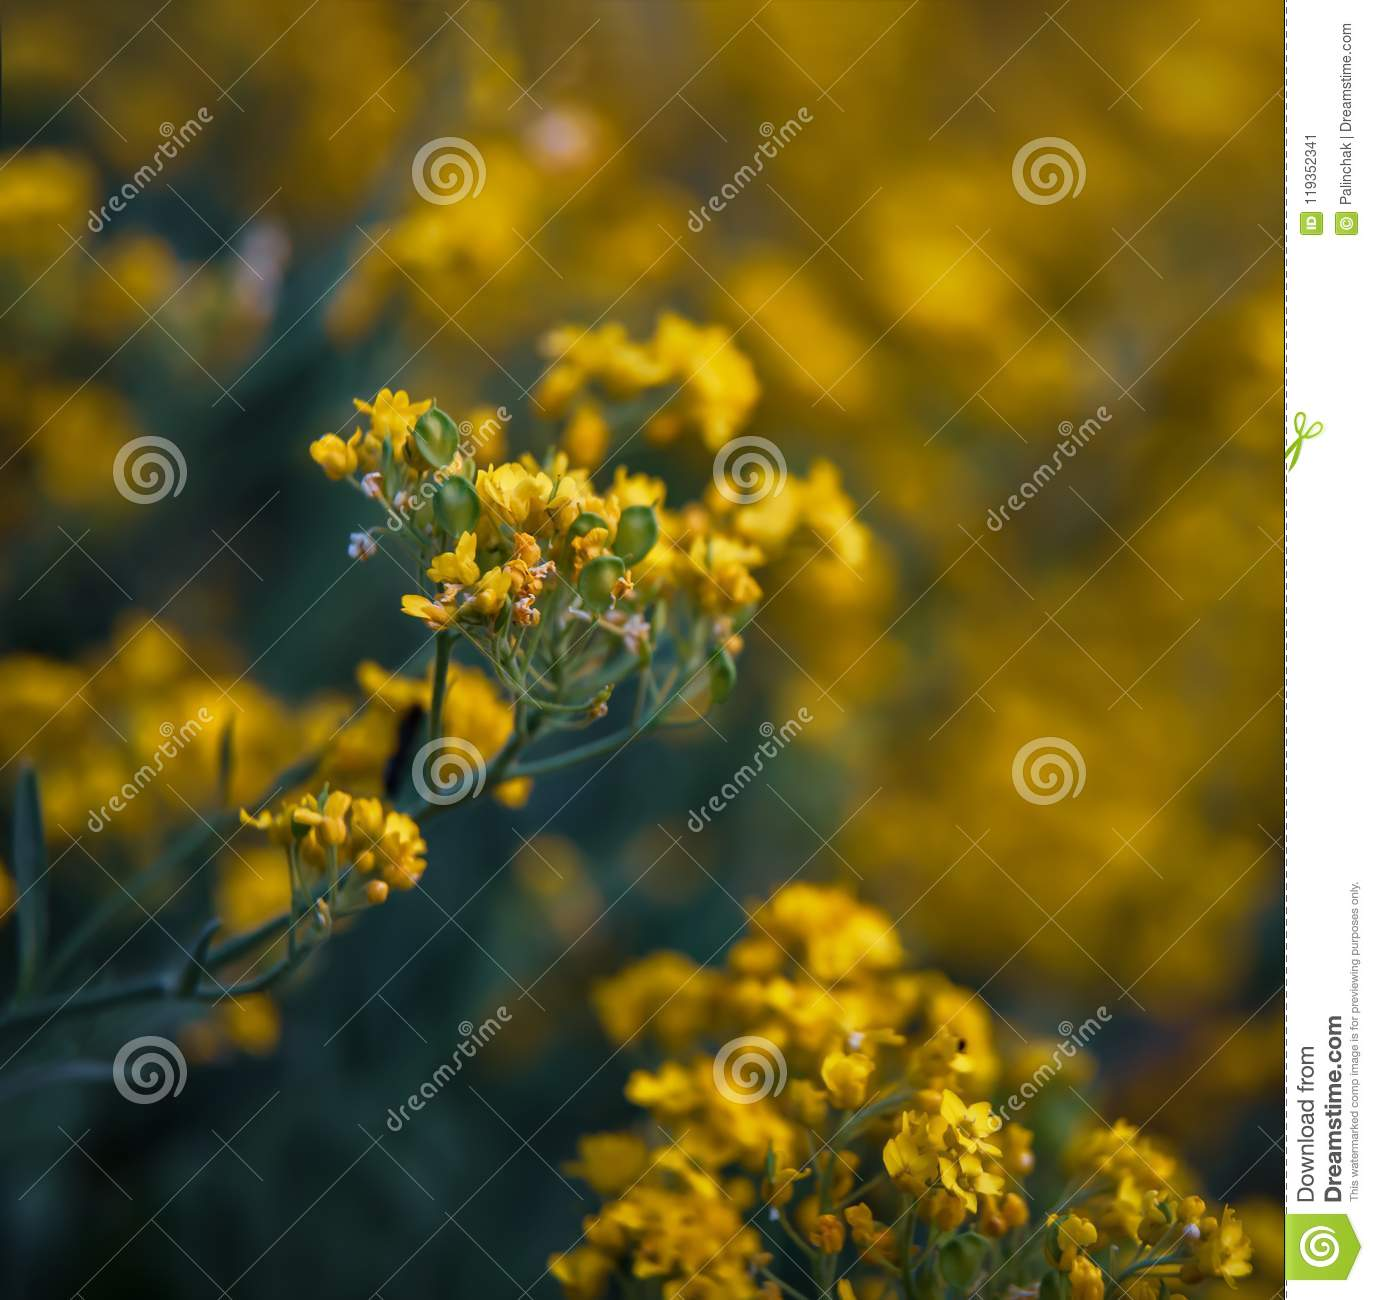 Small yellow flowers of aurinia saxatilis in the spring time stock soft focus image of small yellow flowers of aurinia saxatilis in the spring time in the garden common names include basket of gold goldentuft alyssum mightylinksfo